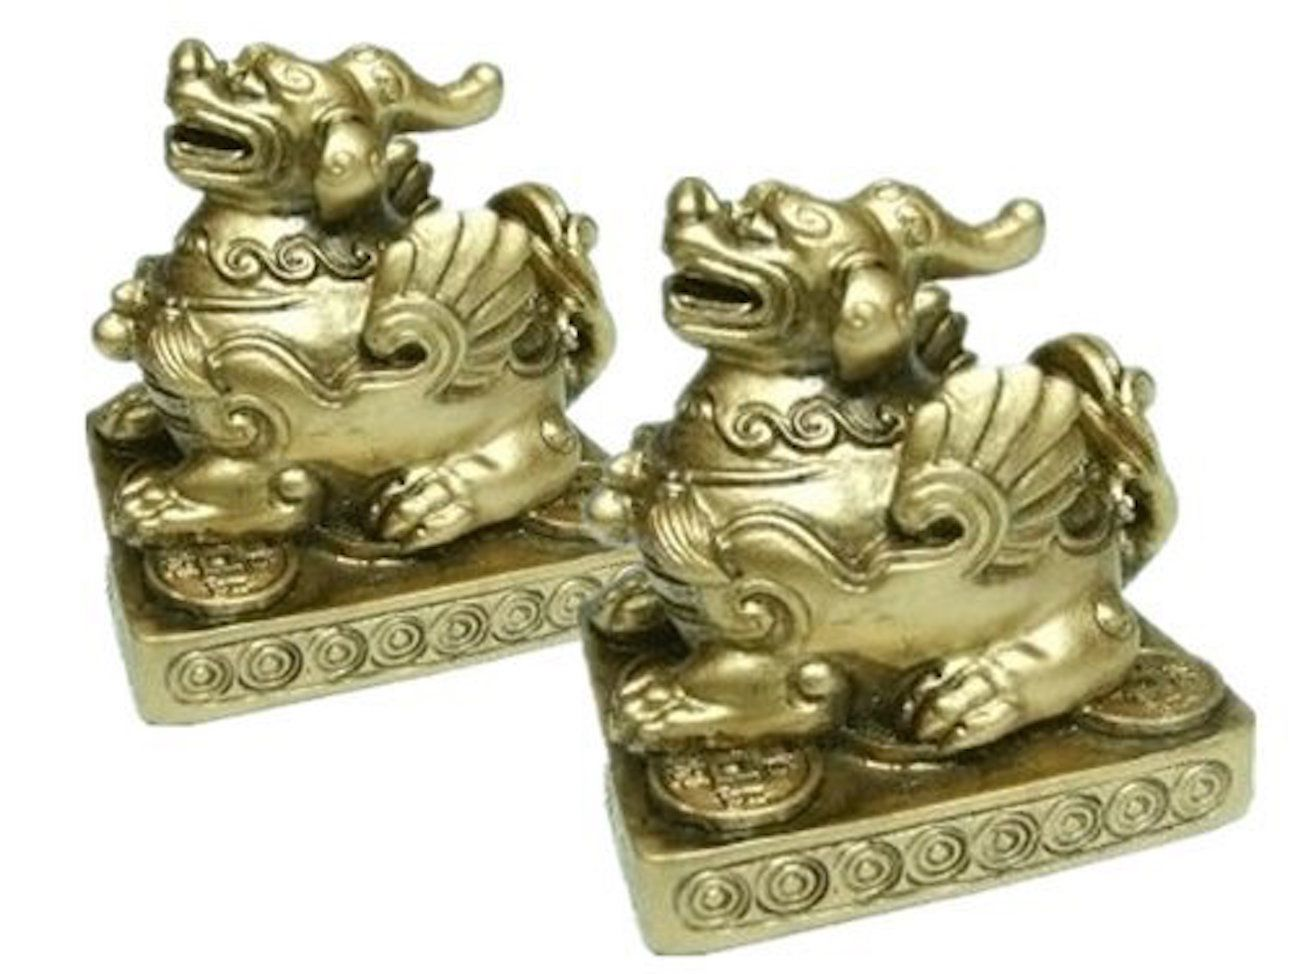 12 Feng Shui Cures To Bring Luck And Protection